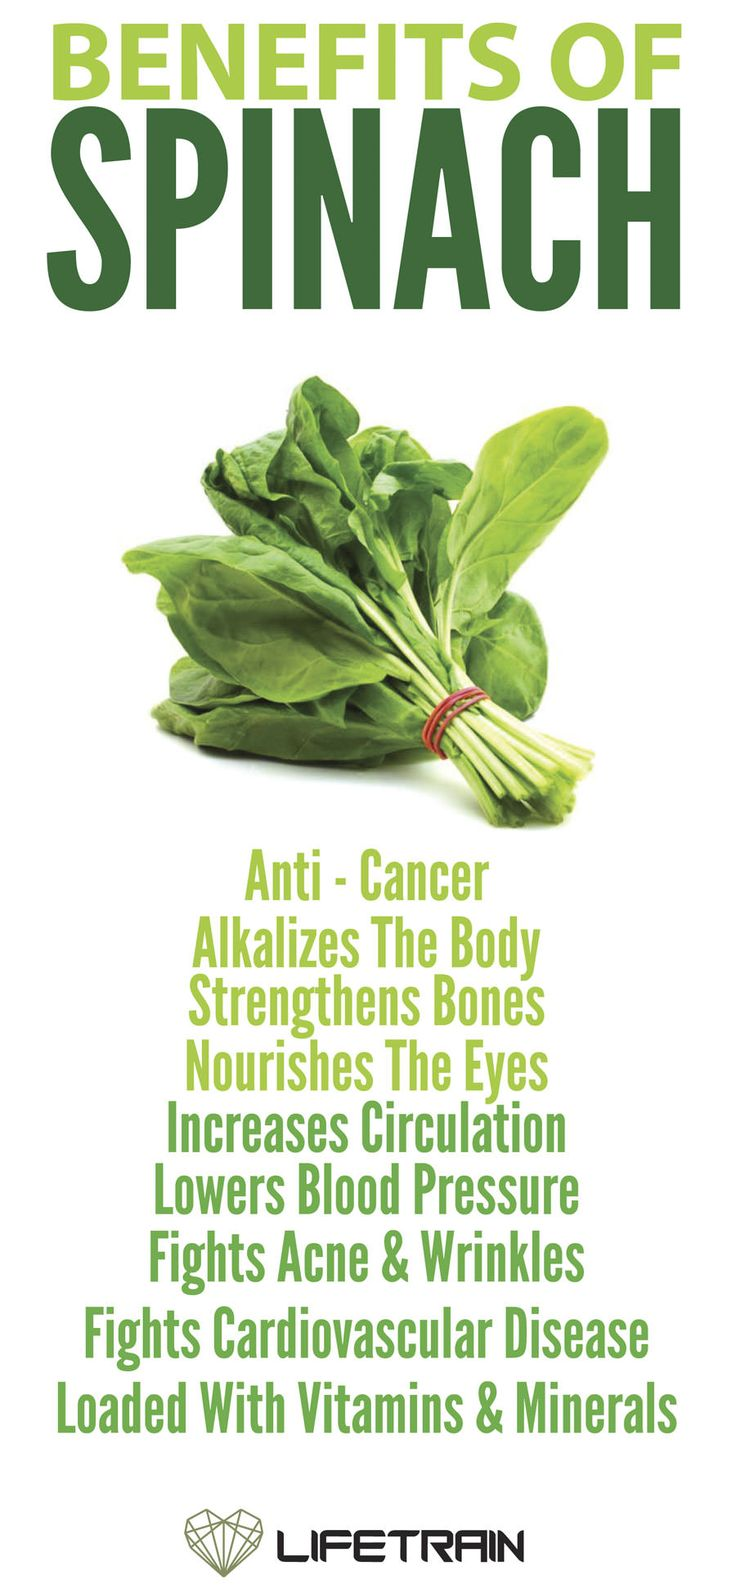 Benefits of Spinach #health